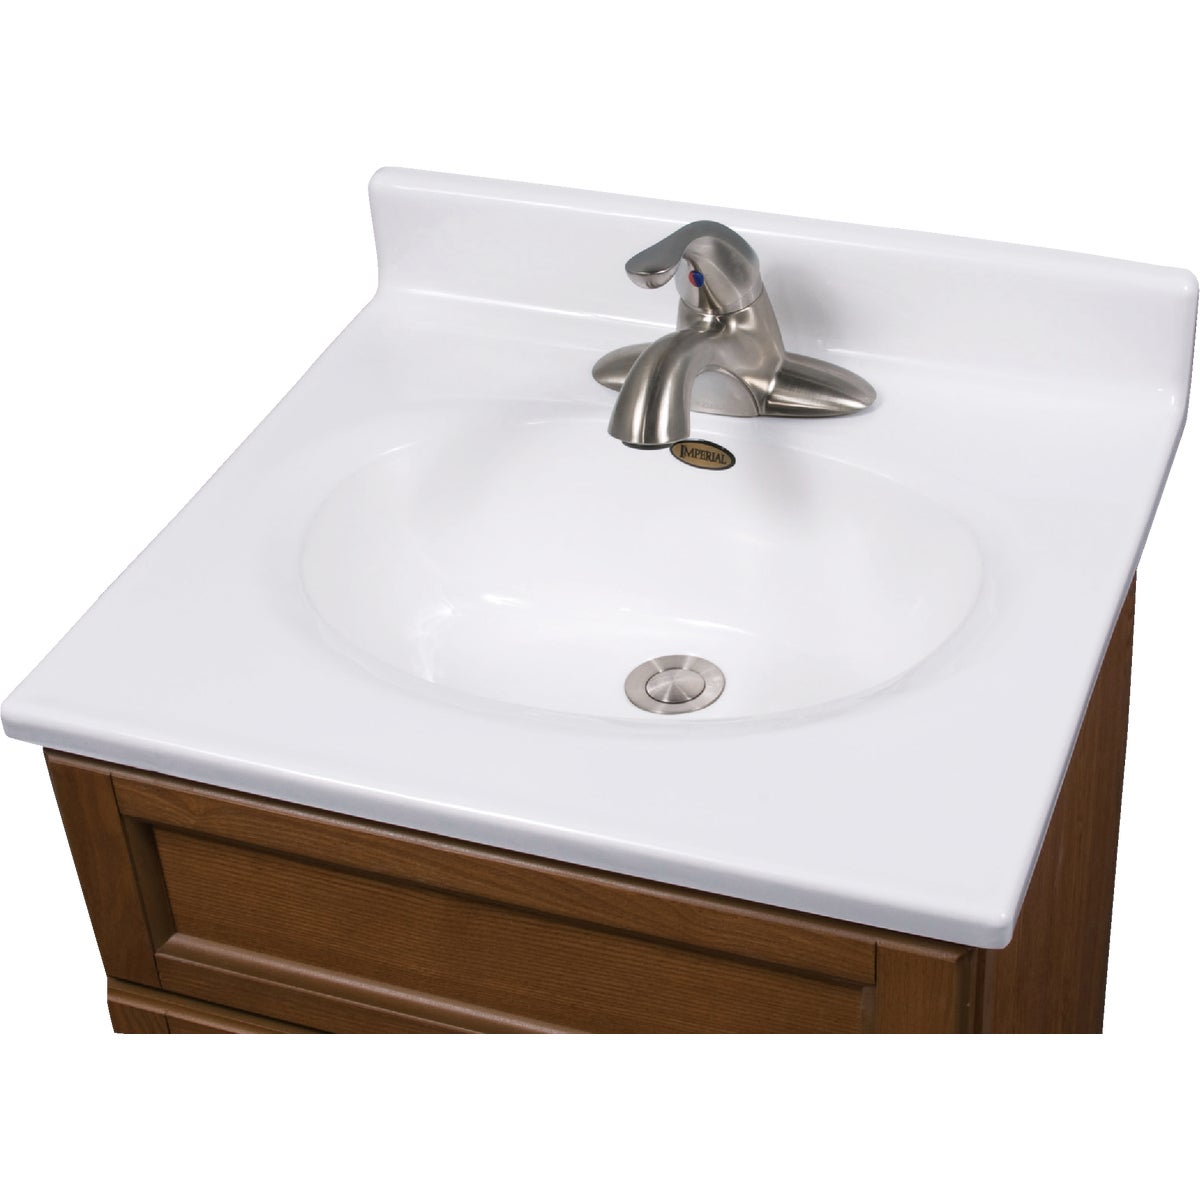 19X17 WHT VANITY TOP - VC1917SPW by Imperial Marble Corp